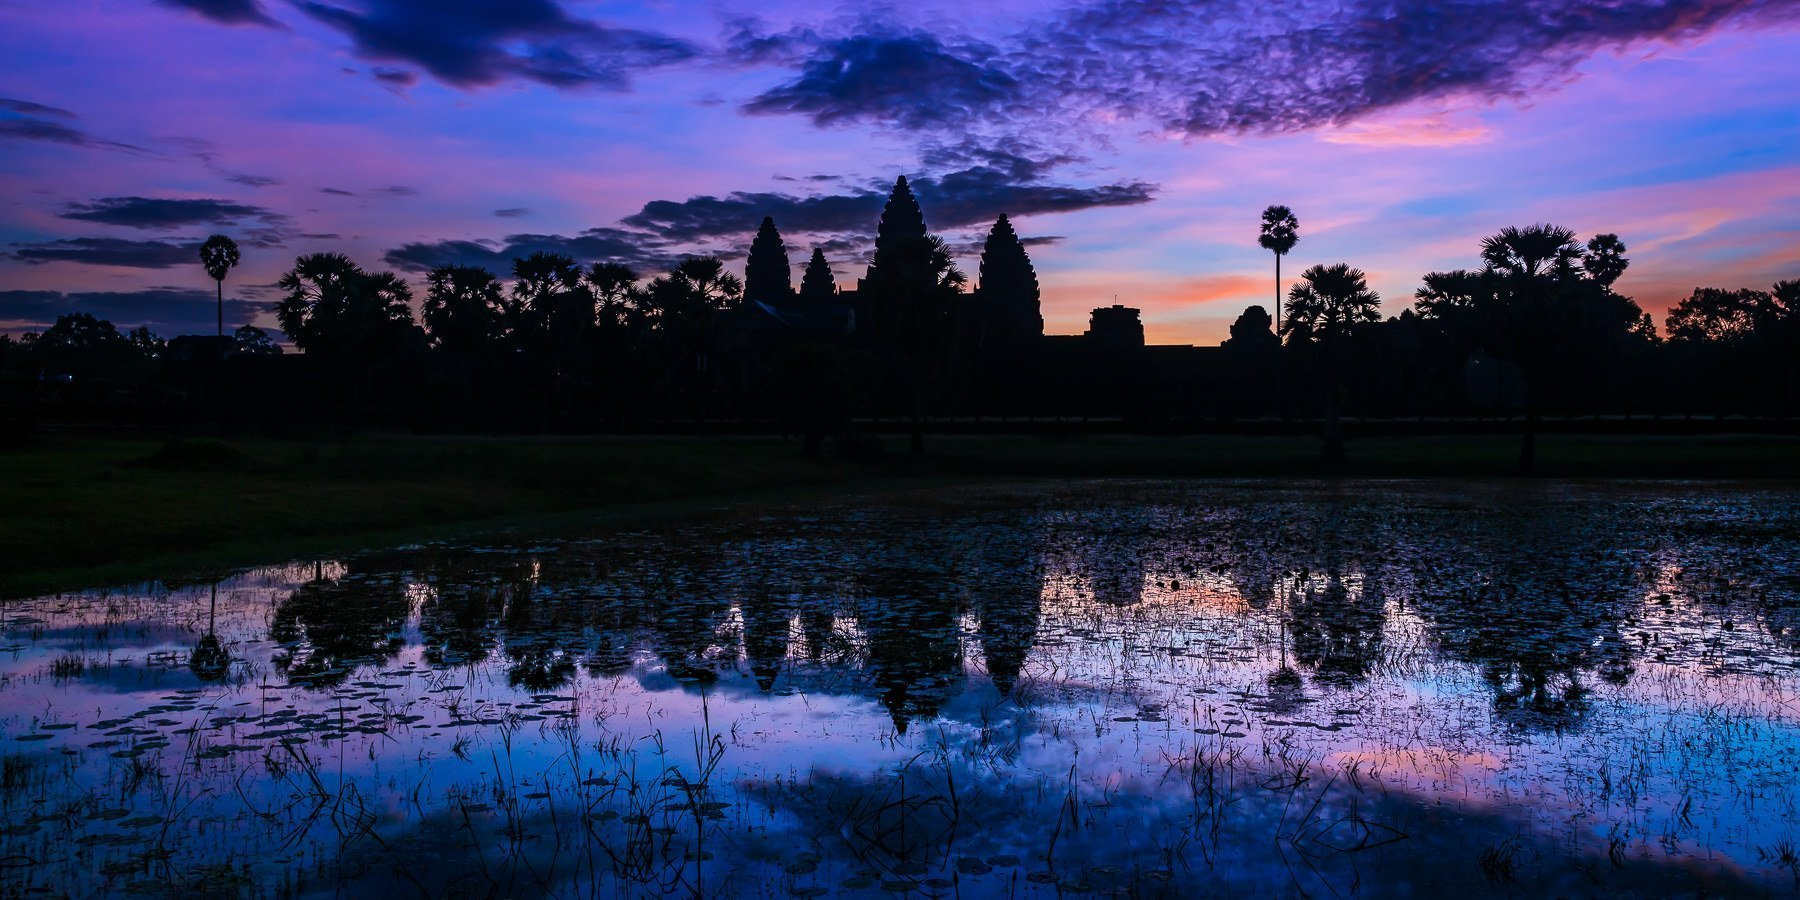 Silhouette of the Temples of Angkor Wat at sunrise with deep blue tones in the sky with hints of pink in the clouds